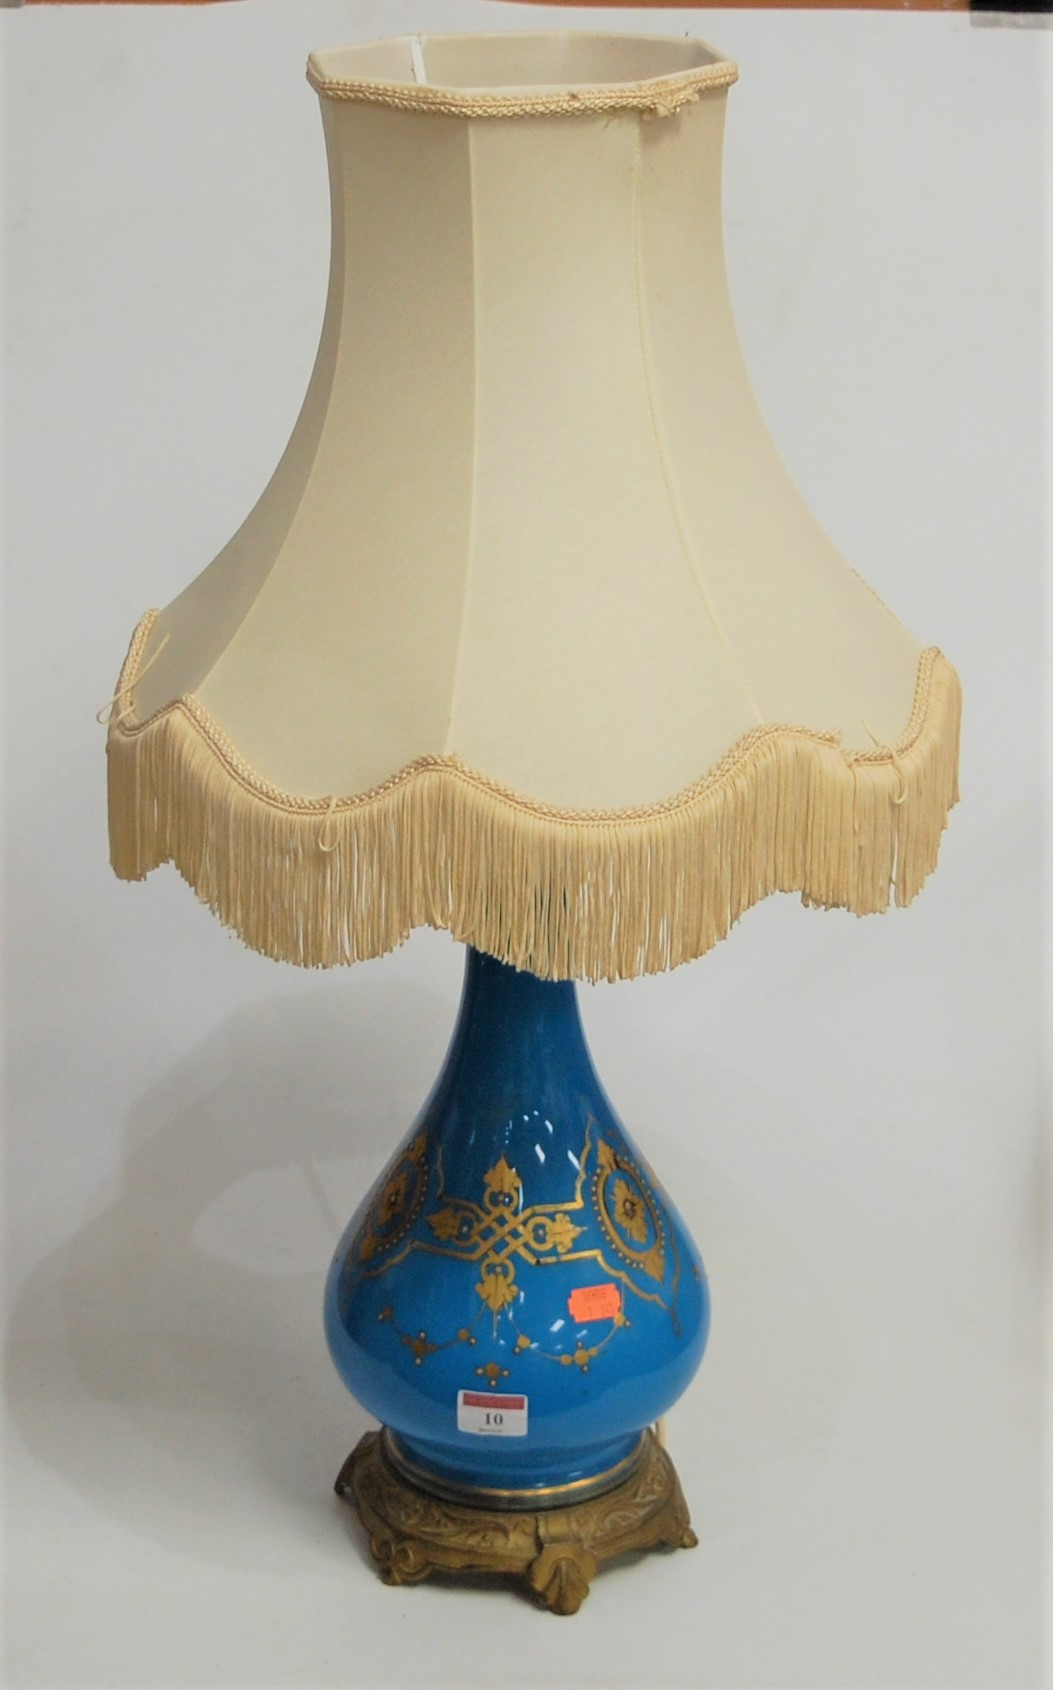 Lot 10 - A French style blue glazed and gilt metal mounted table lamp, having applied gilt and enamel